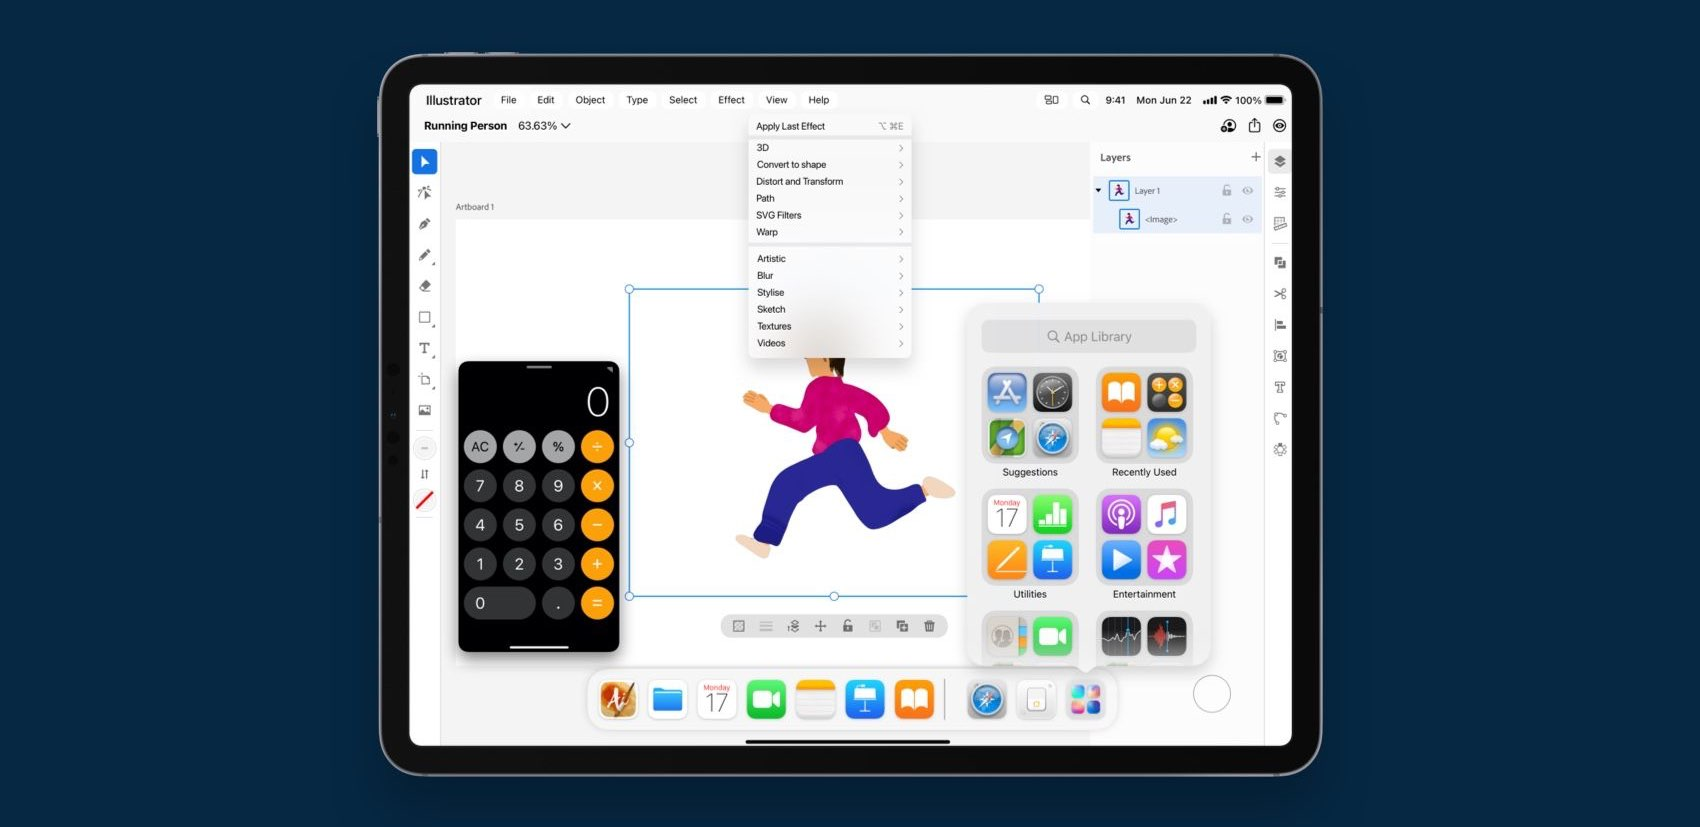 iPadOS multitasking concept by Vidit Bhargava envisioning floating windows for apps like Calculator on iPad